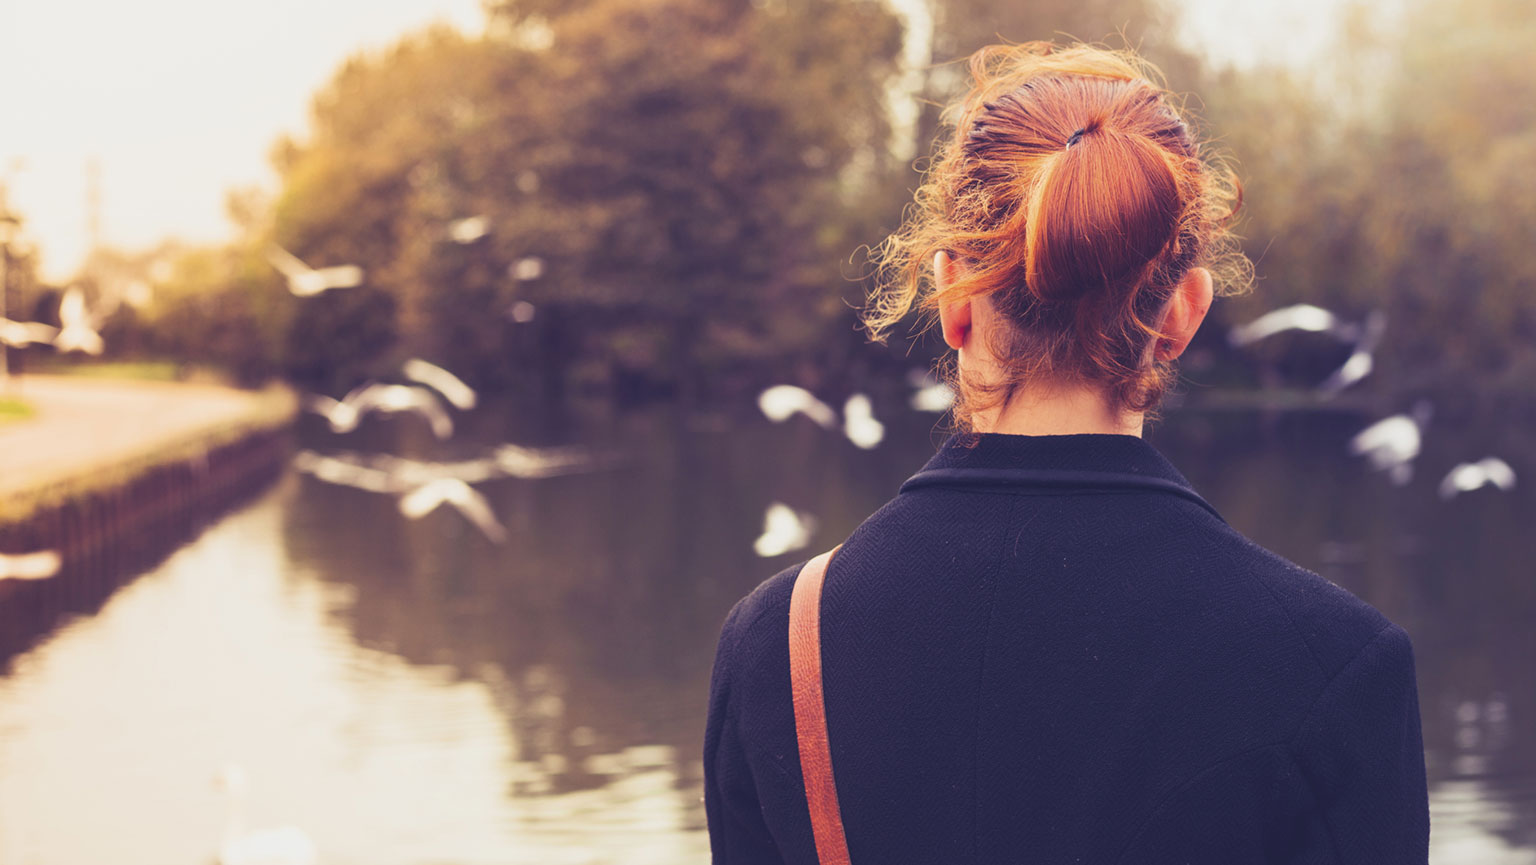 Solitude—An Antidote to Loneliness